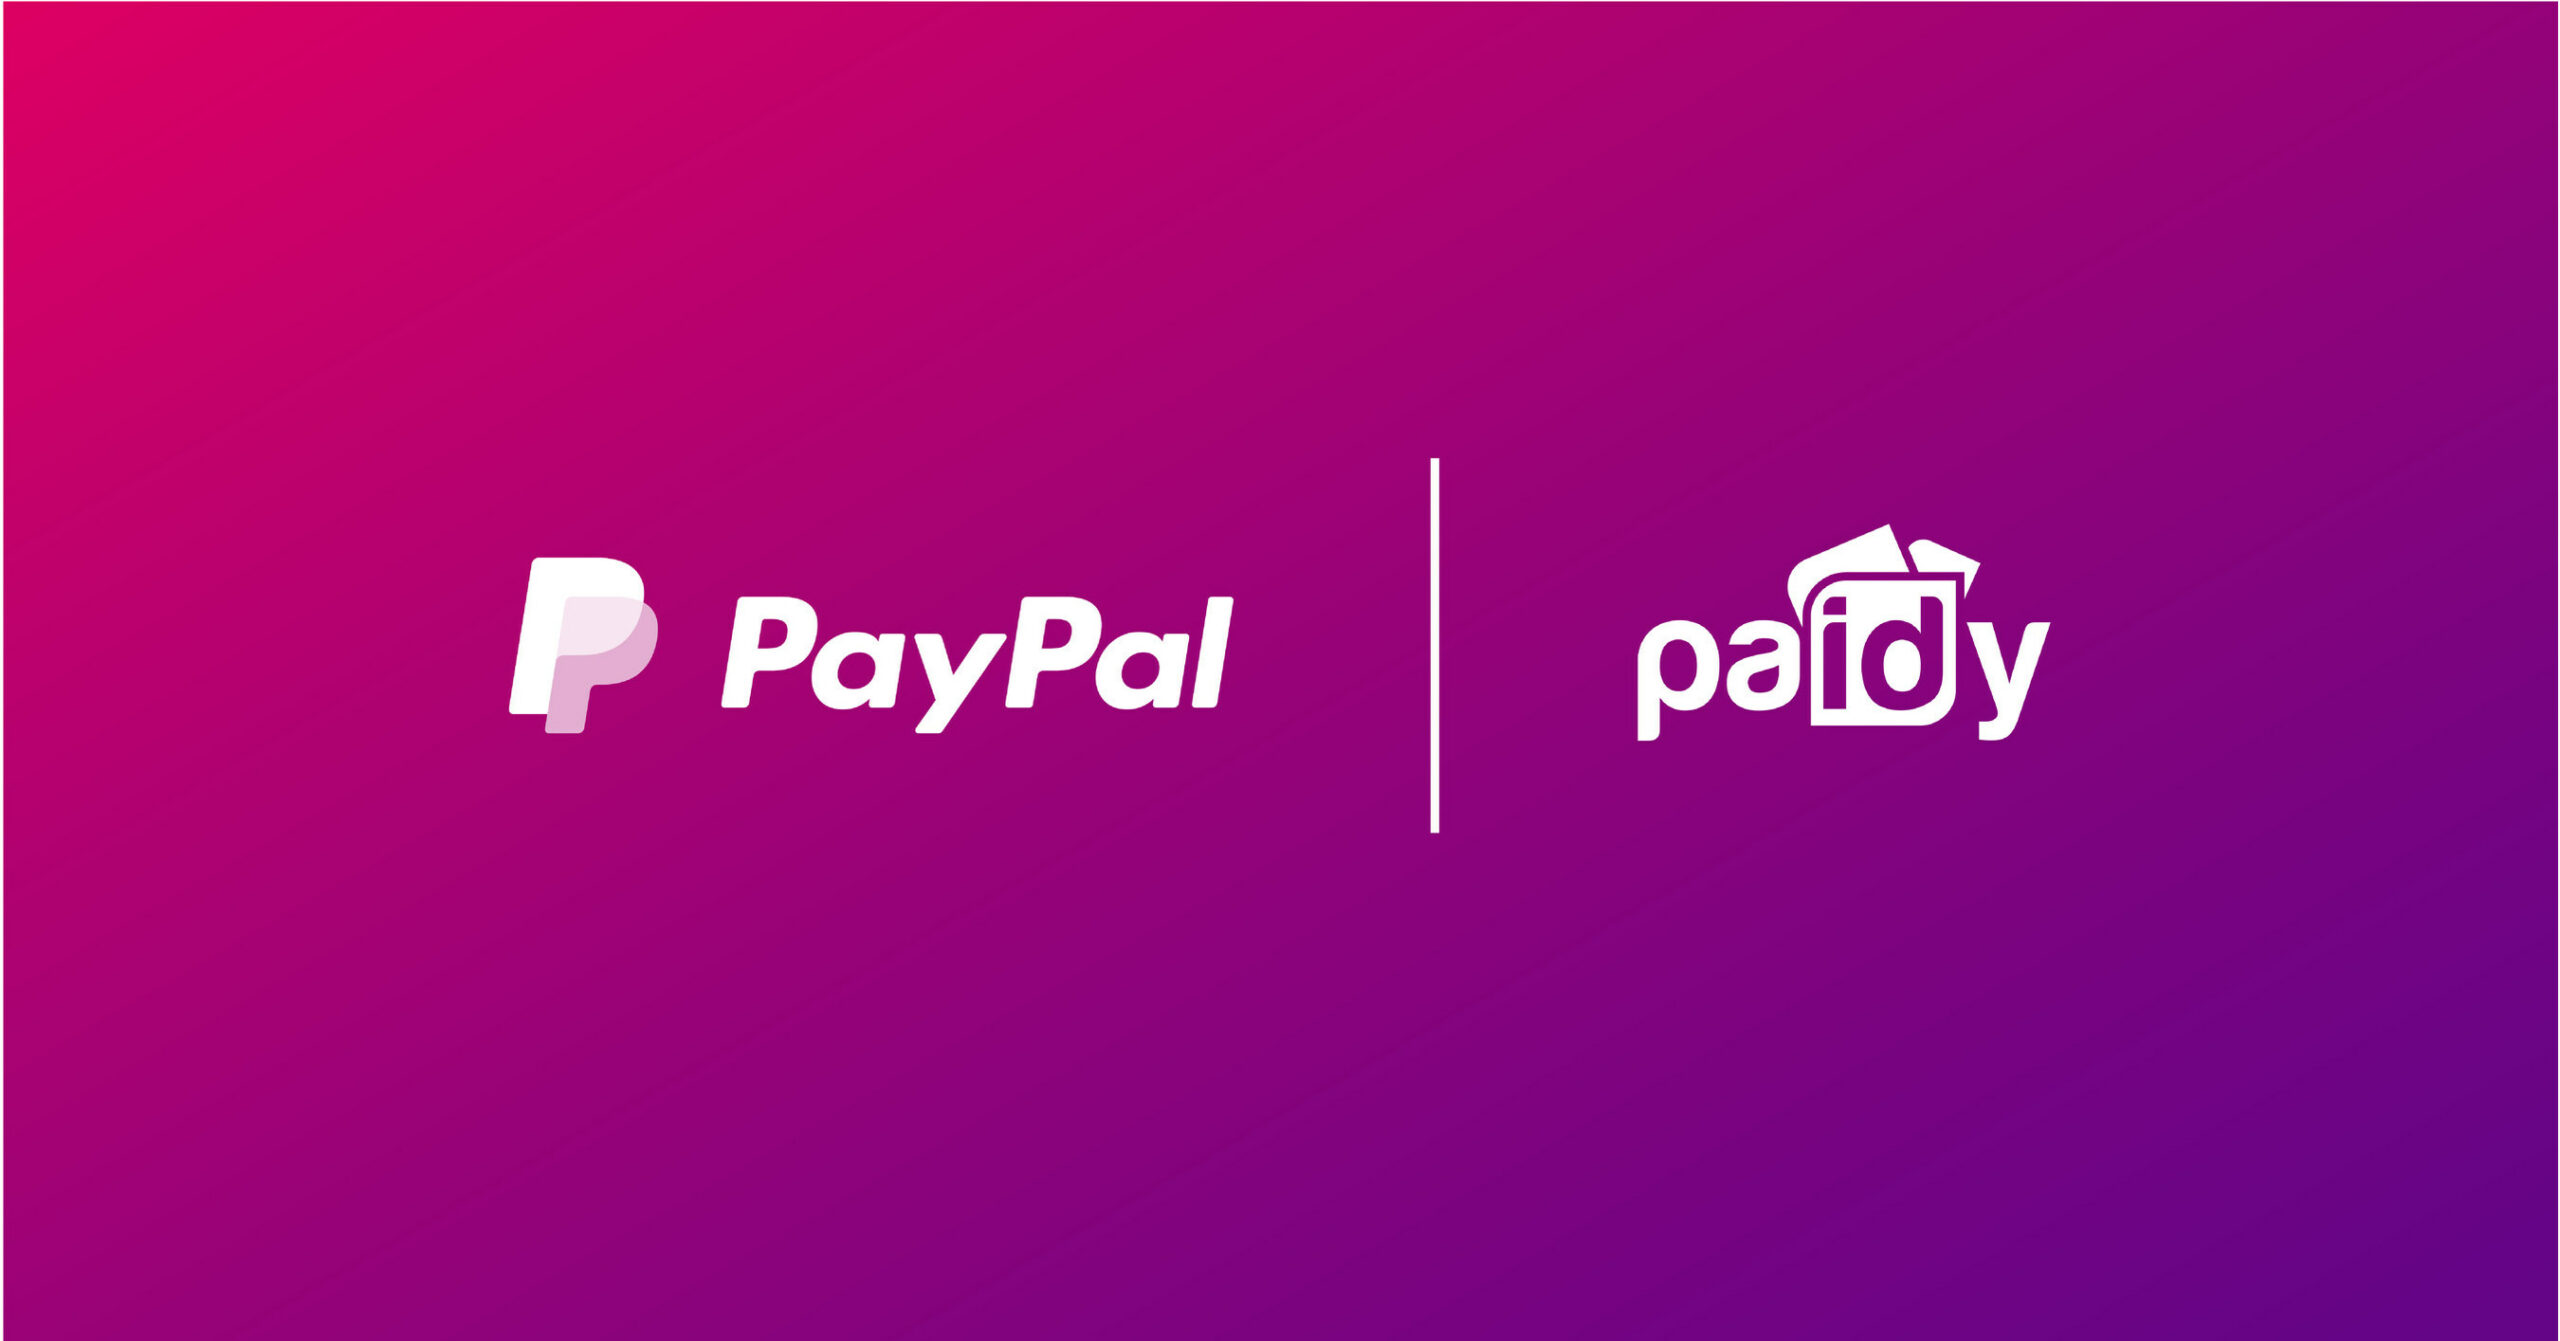 PayPal and Paidy